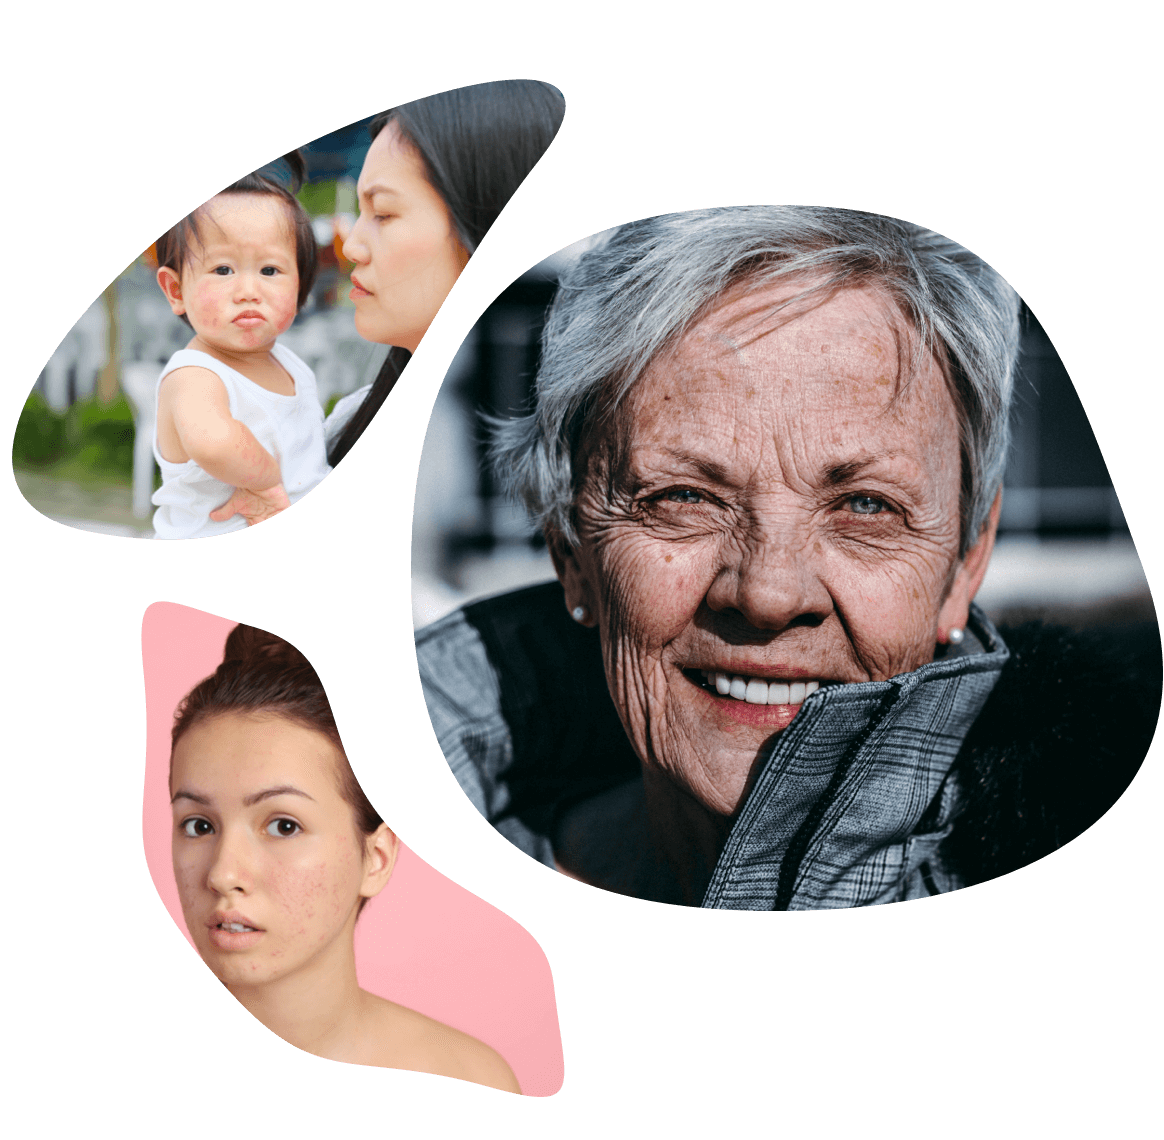 Photo grid representing dermatology therapeutic area (baby with dry skin on face, woman with acne on face, etc.).